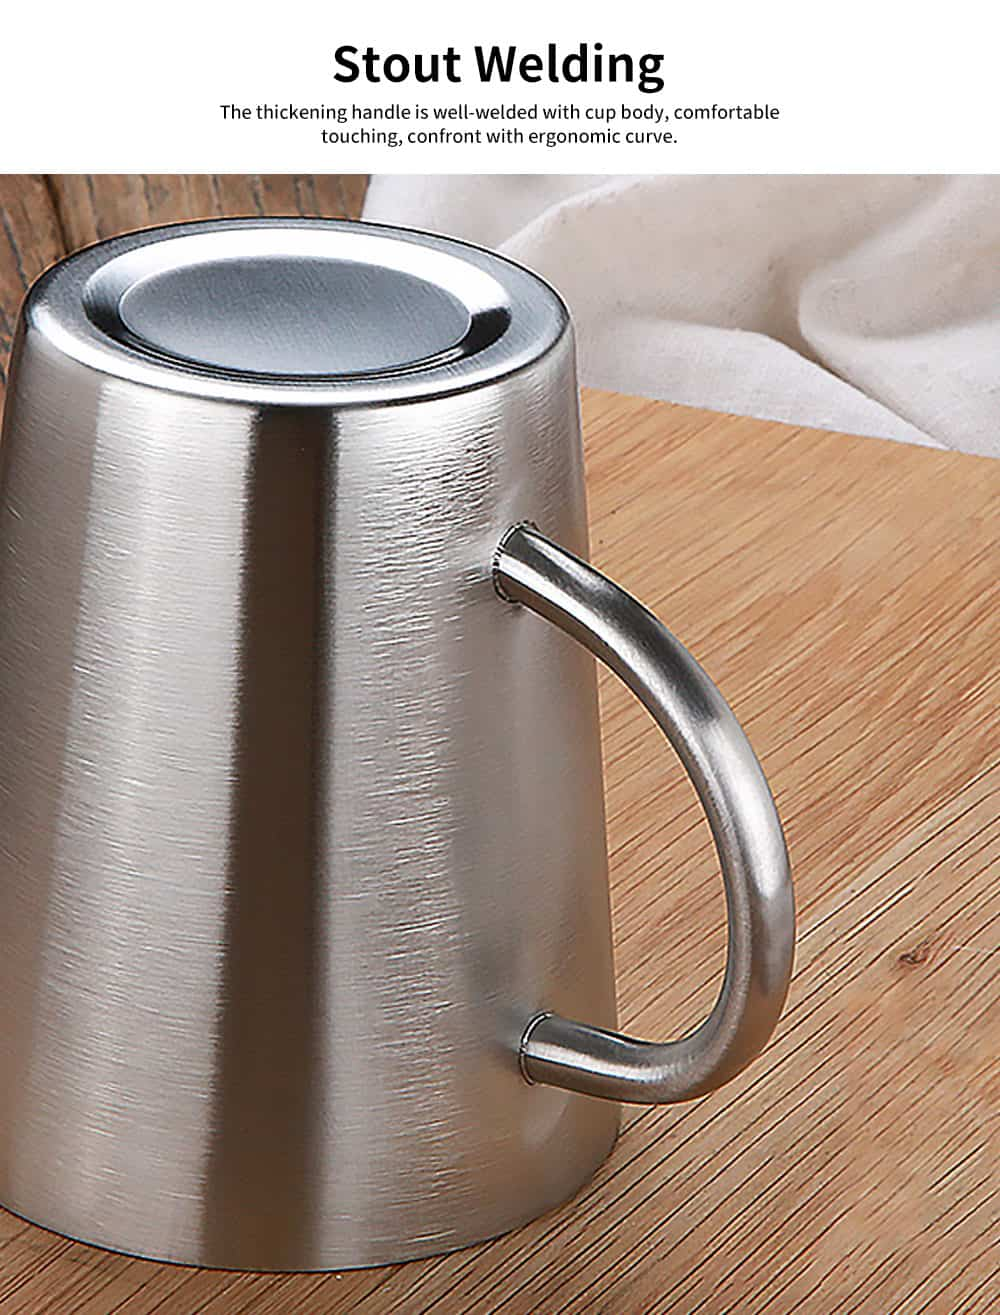 European Style Stainless Steel Mug with Double heat Insulation, Stylish Cup for Beer, Coffee, Milk, Cold Juice 3